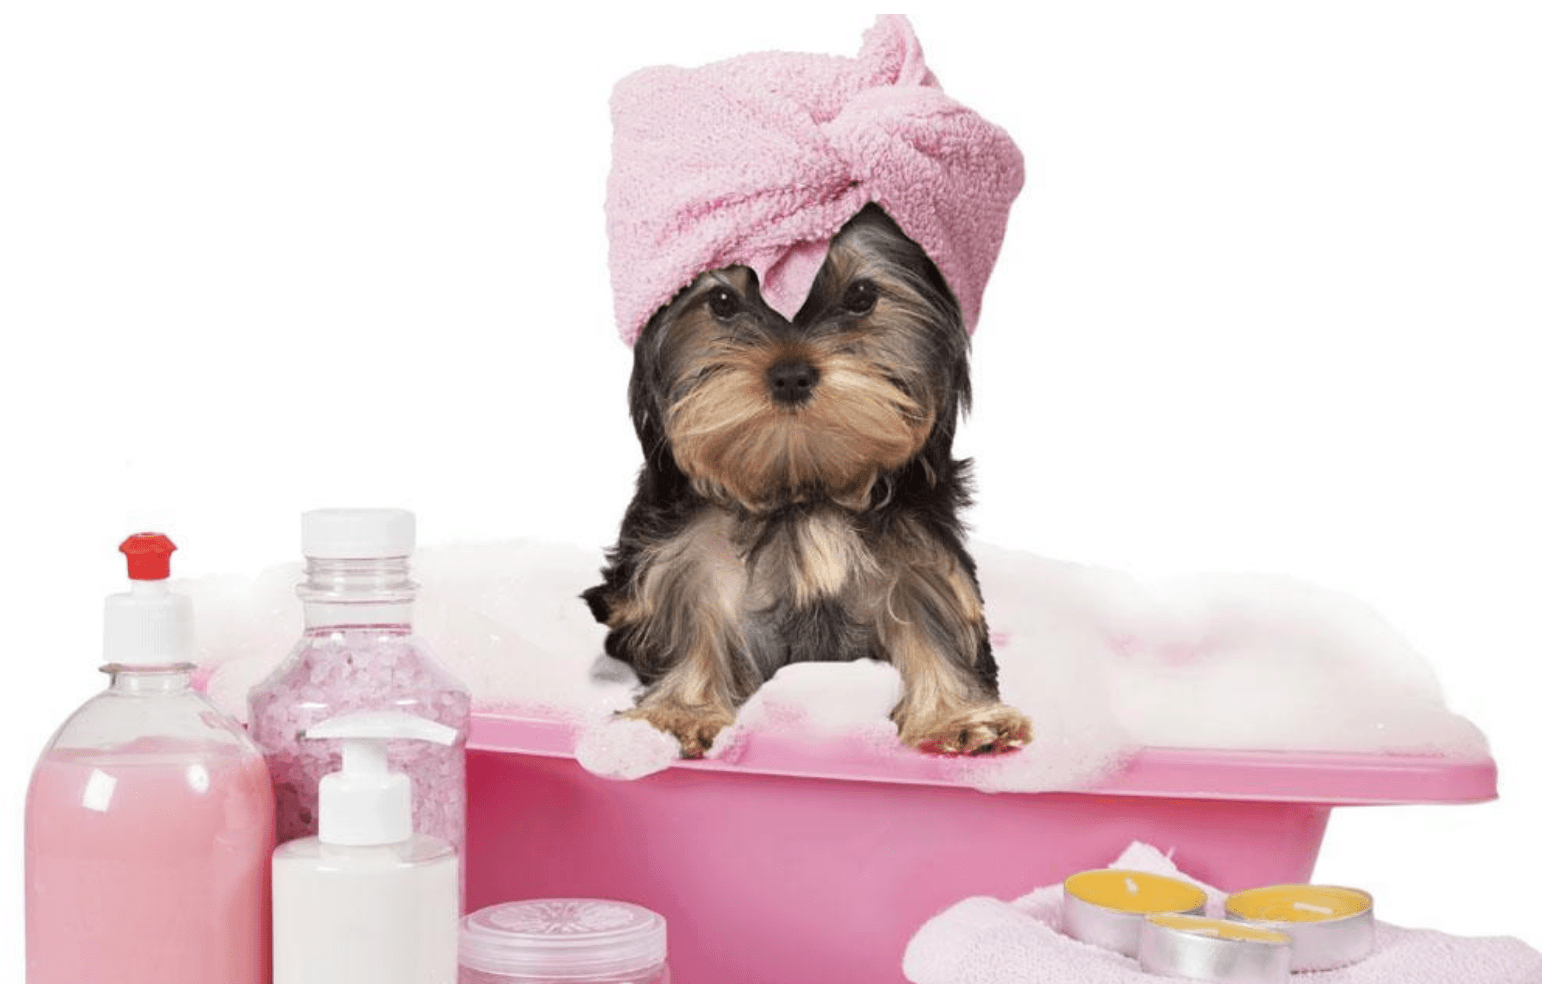 How To Fluff A Dog's Hair After Shampoo?